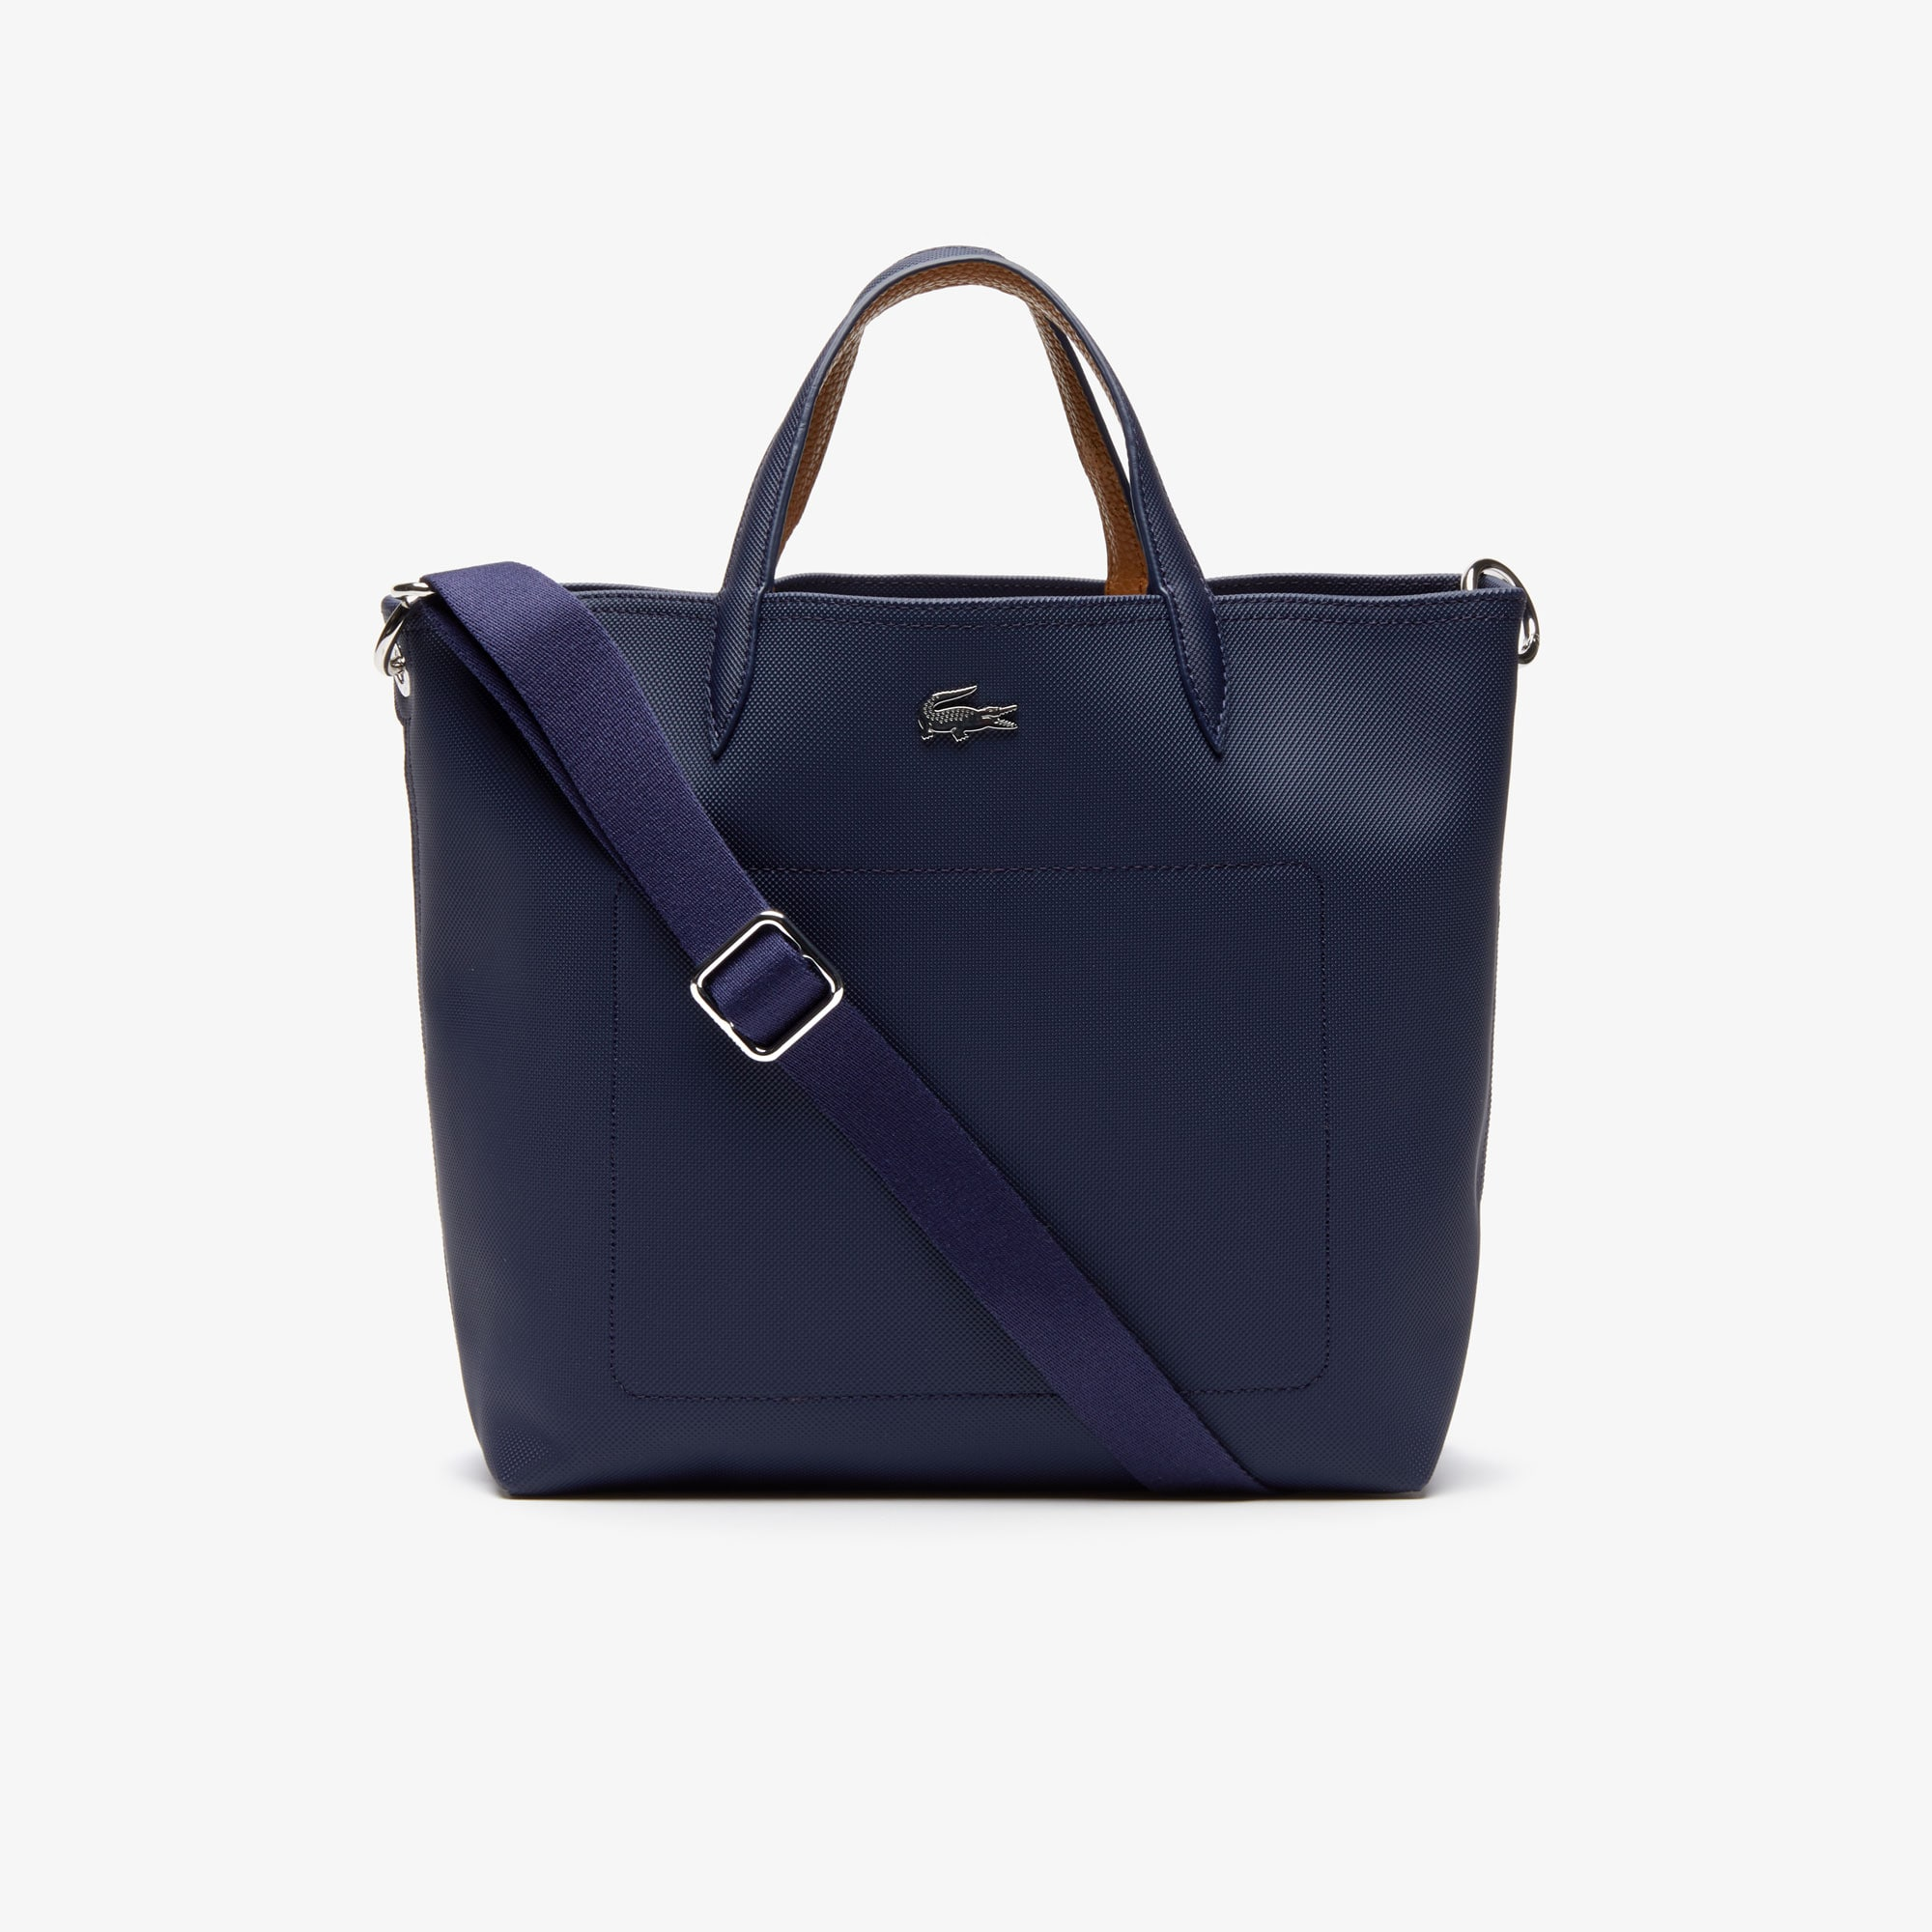 4a452d339ff2 Women s Mini Anna Reversible Coated Piqué Canvas Tote Bag. £125.00. + 1  color. New Arrival